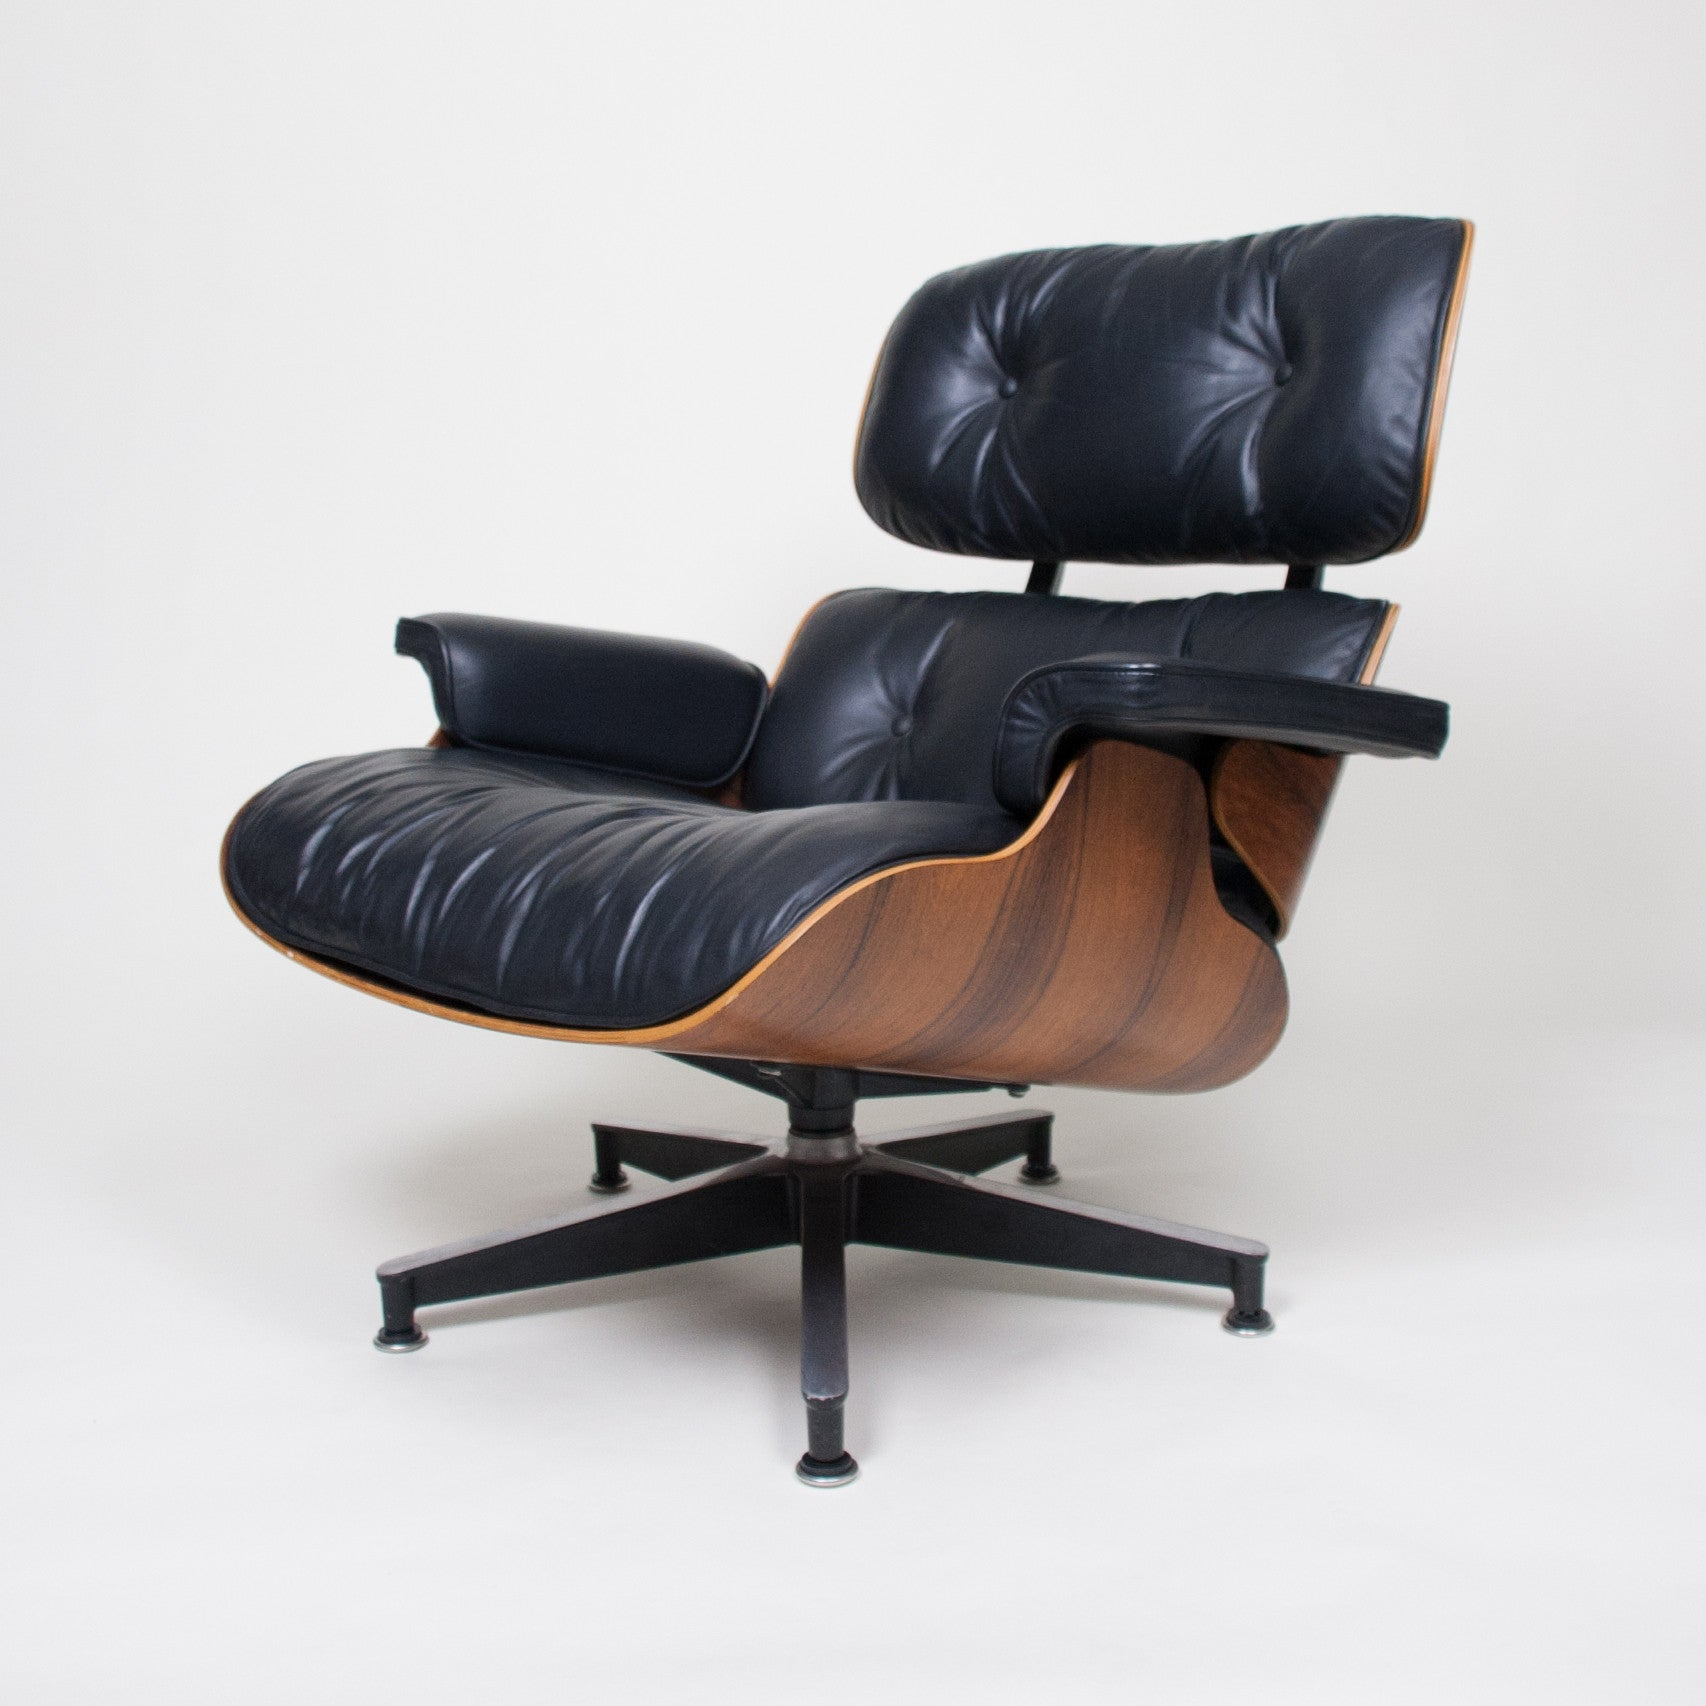 SOLD Herman Miller 1970's Eames Lounge Chair & Ottoman Rosewood 670 671